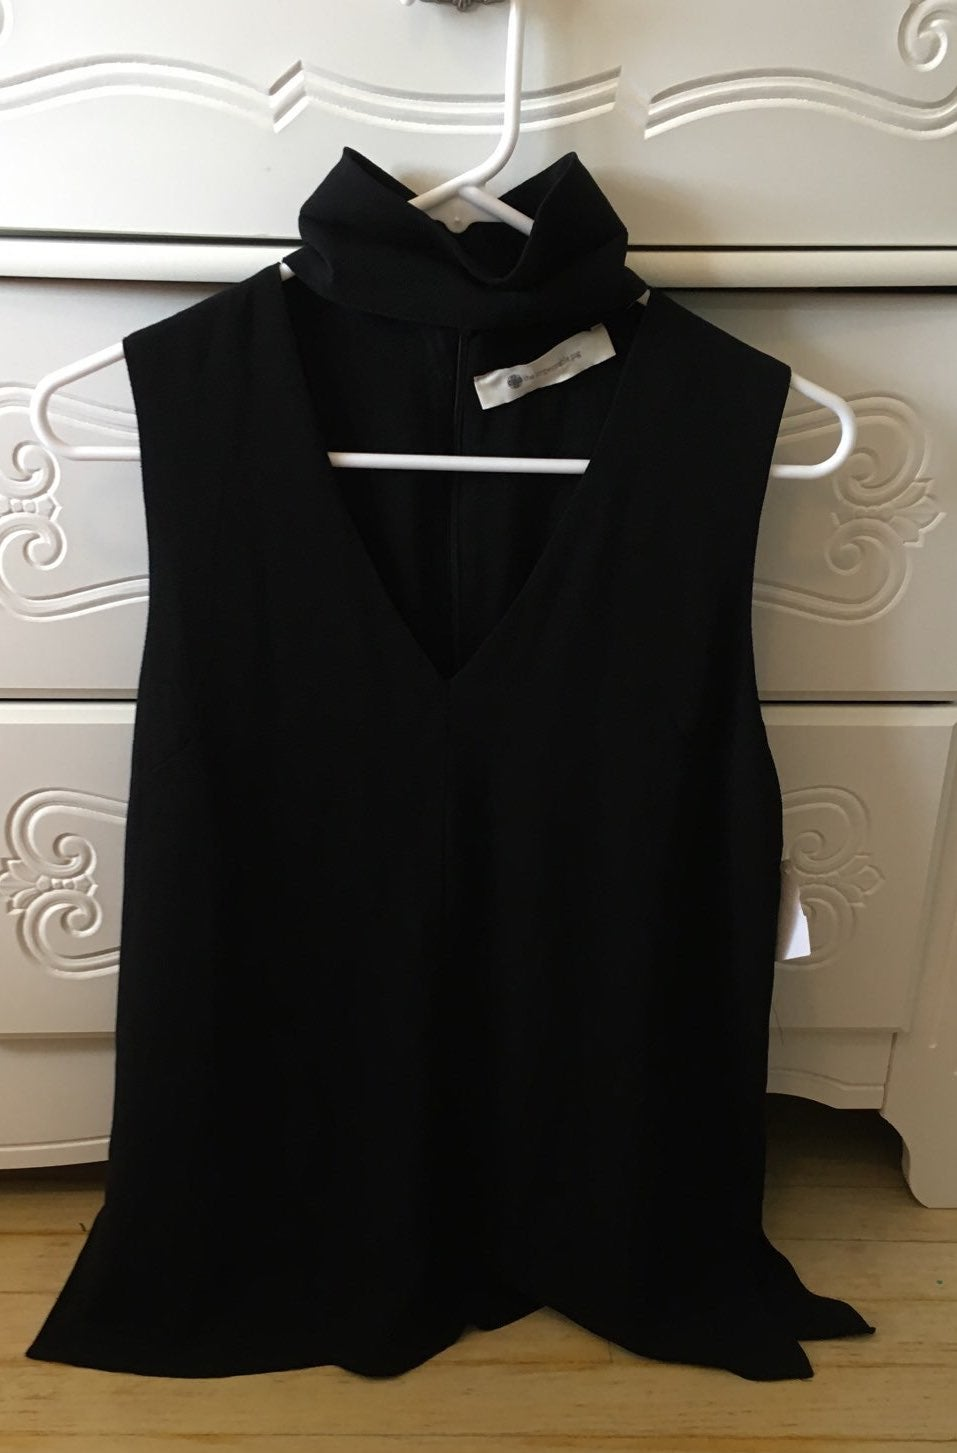 NWT The Impeccable Pig Black Sleeveless